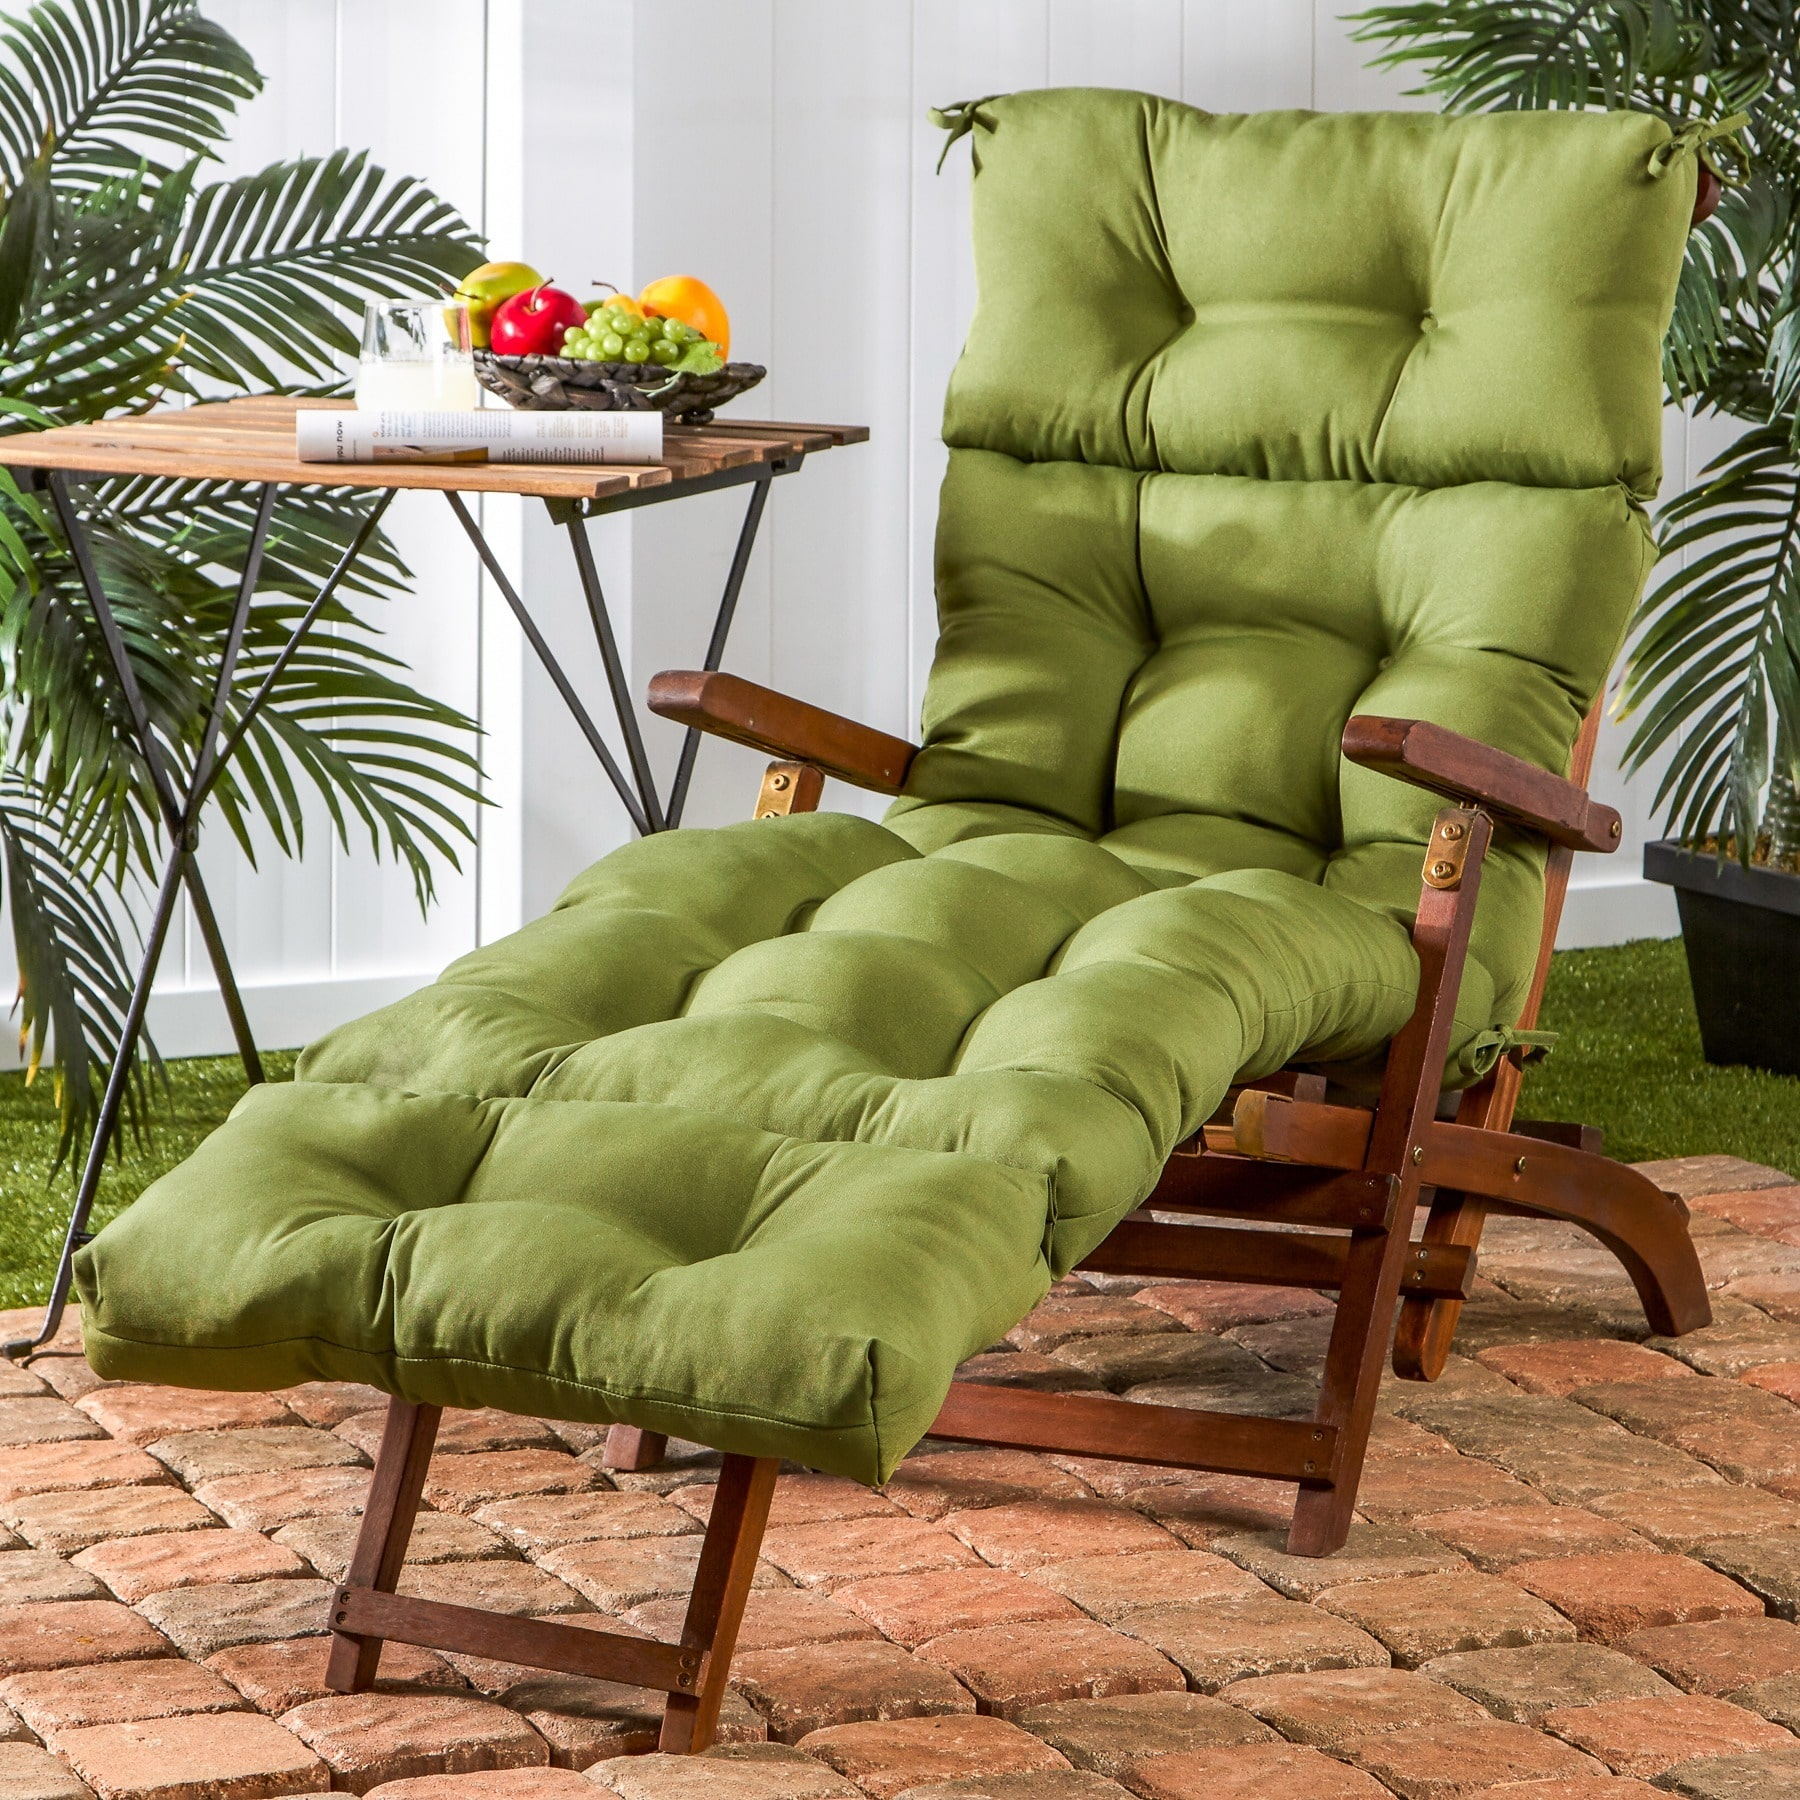 Greendale Home Fashions 72-inch Outdoor Summerside Green Chaise Lounger Cushion